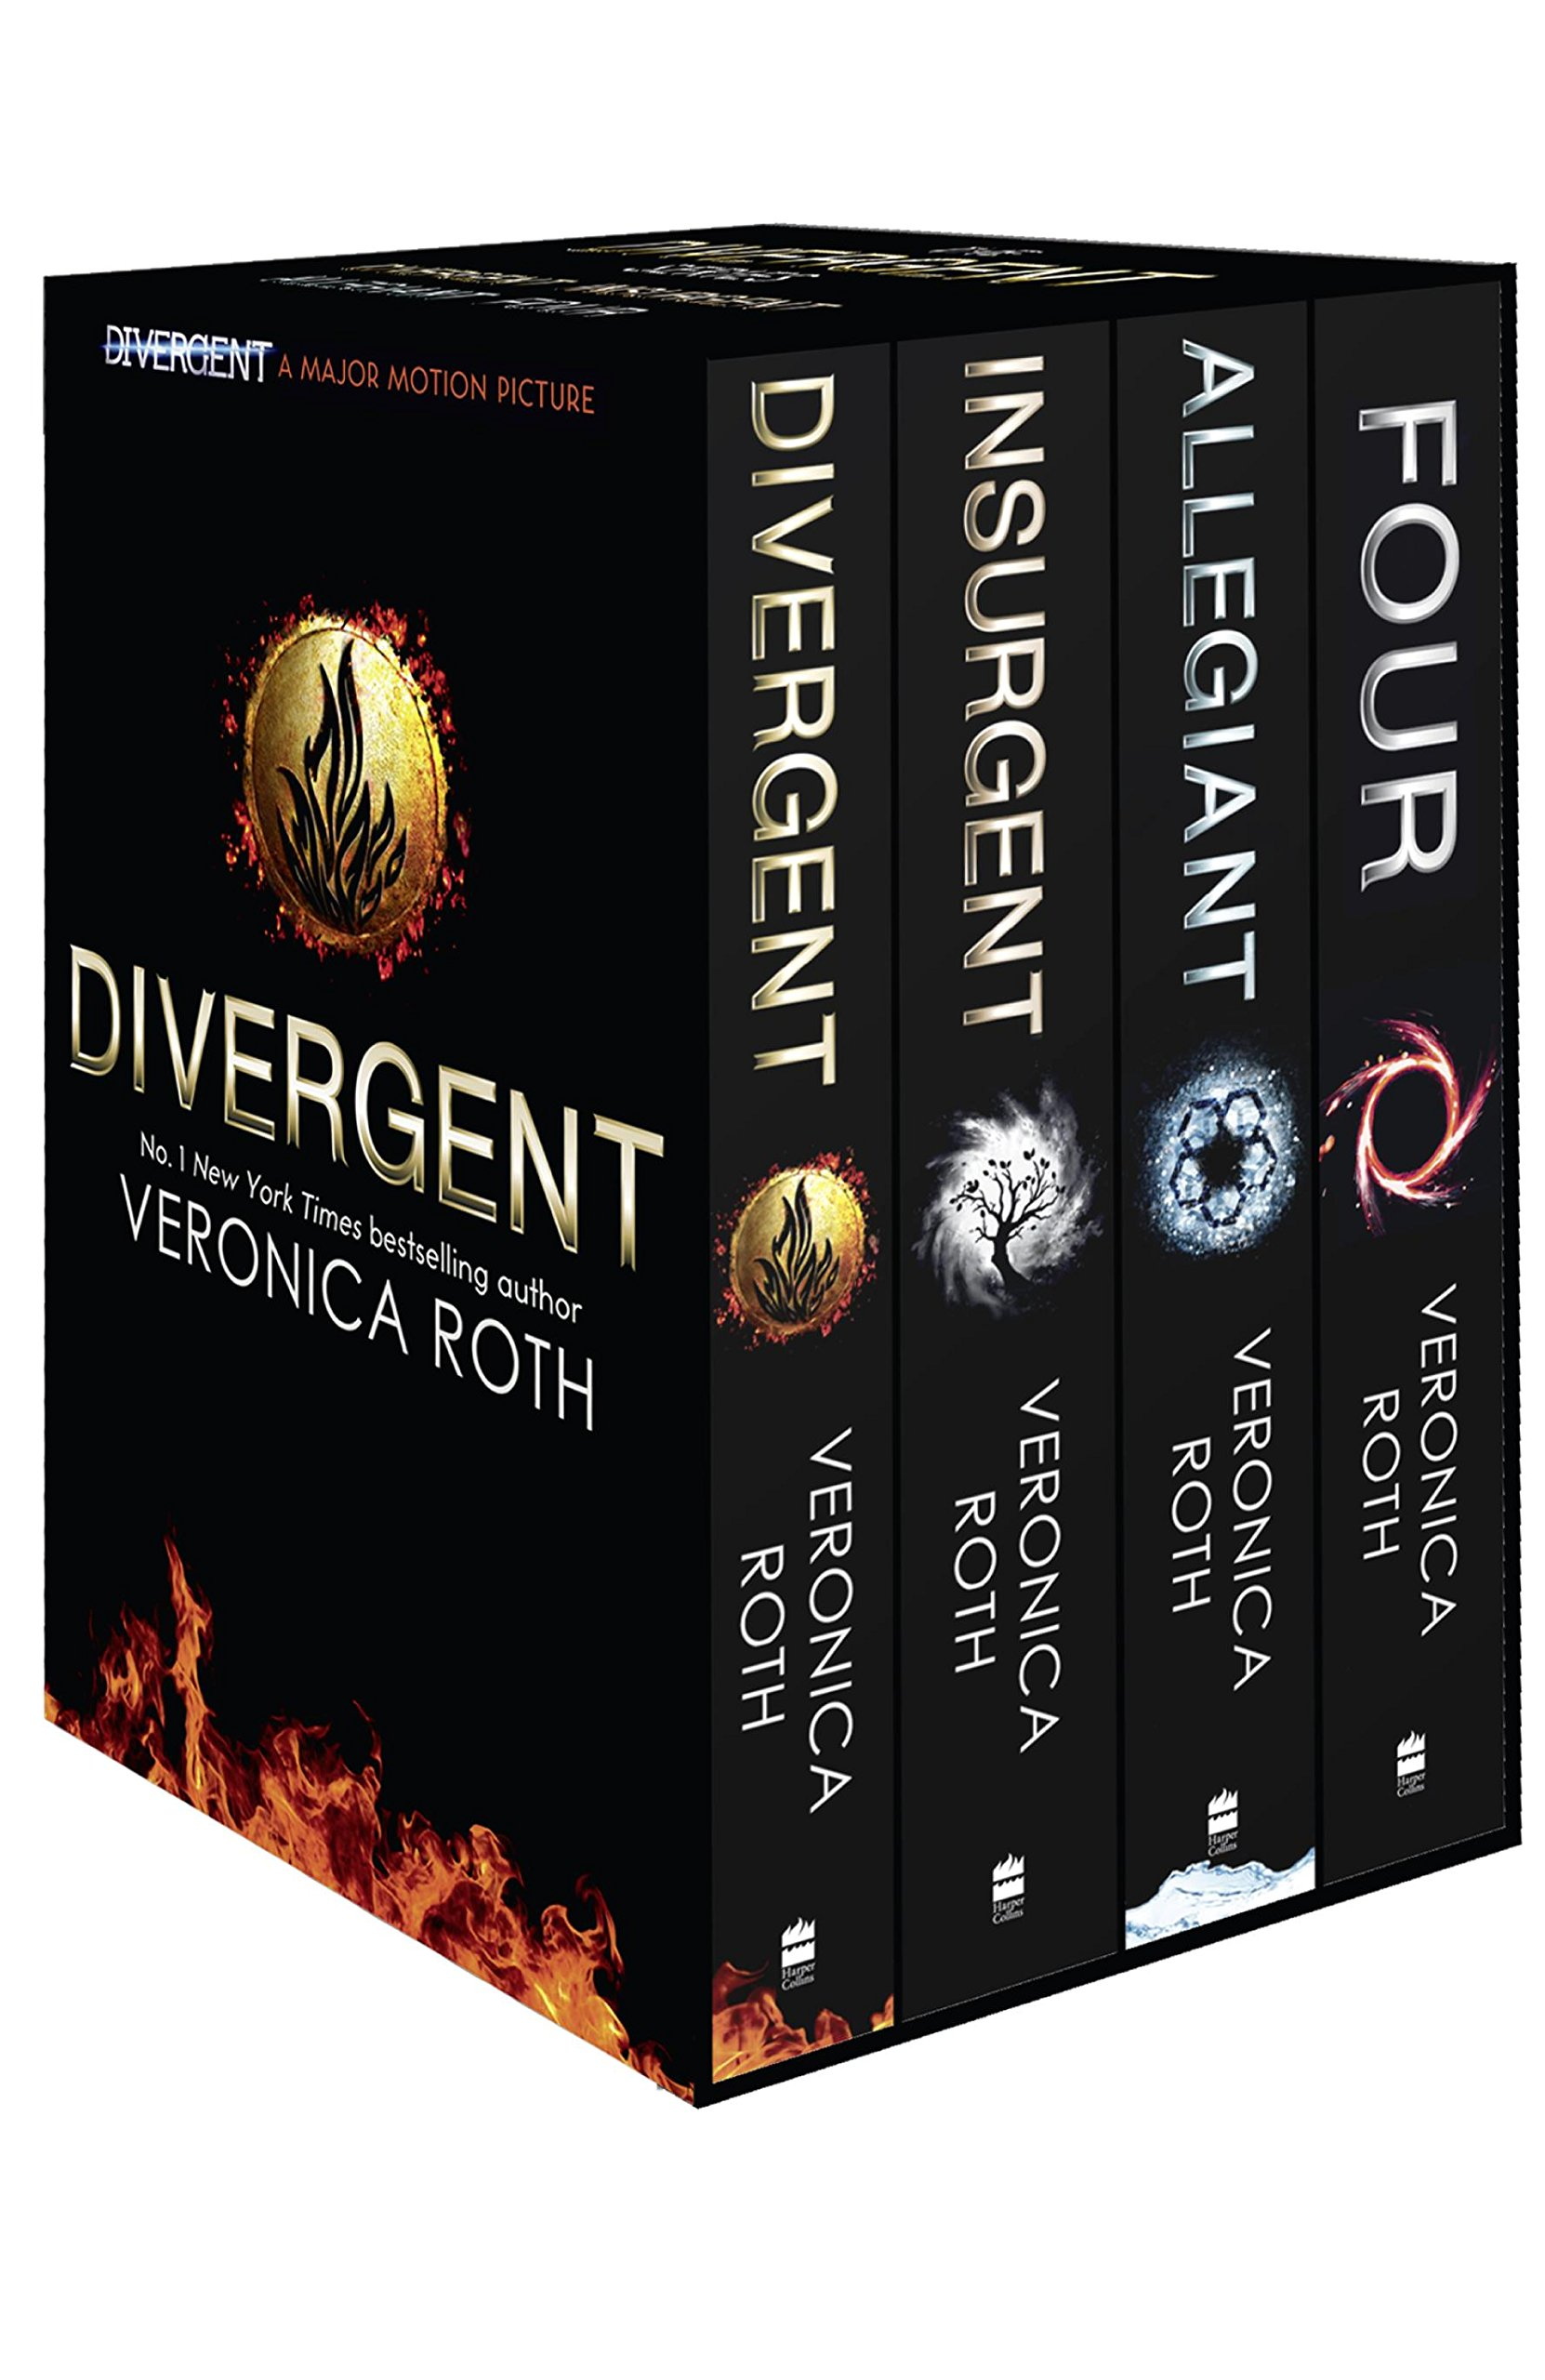 Buy Divergent Series  4 In 1 Book Online At Low Prices In India   Divergent Series  4 In 1 Reviews & Ratings  Amazon